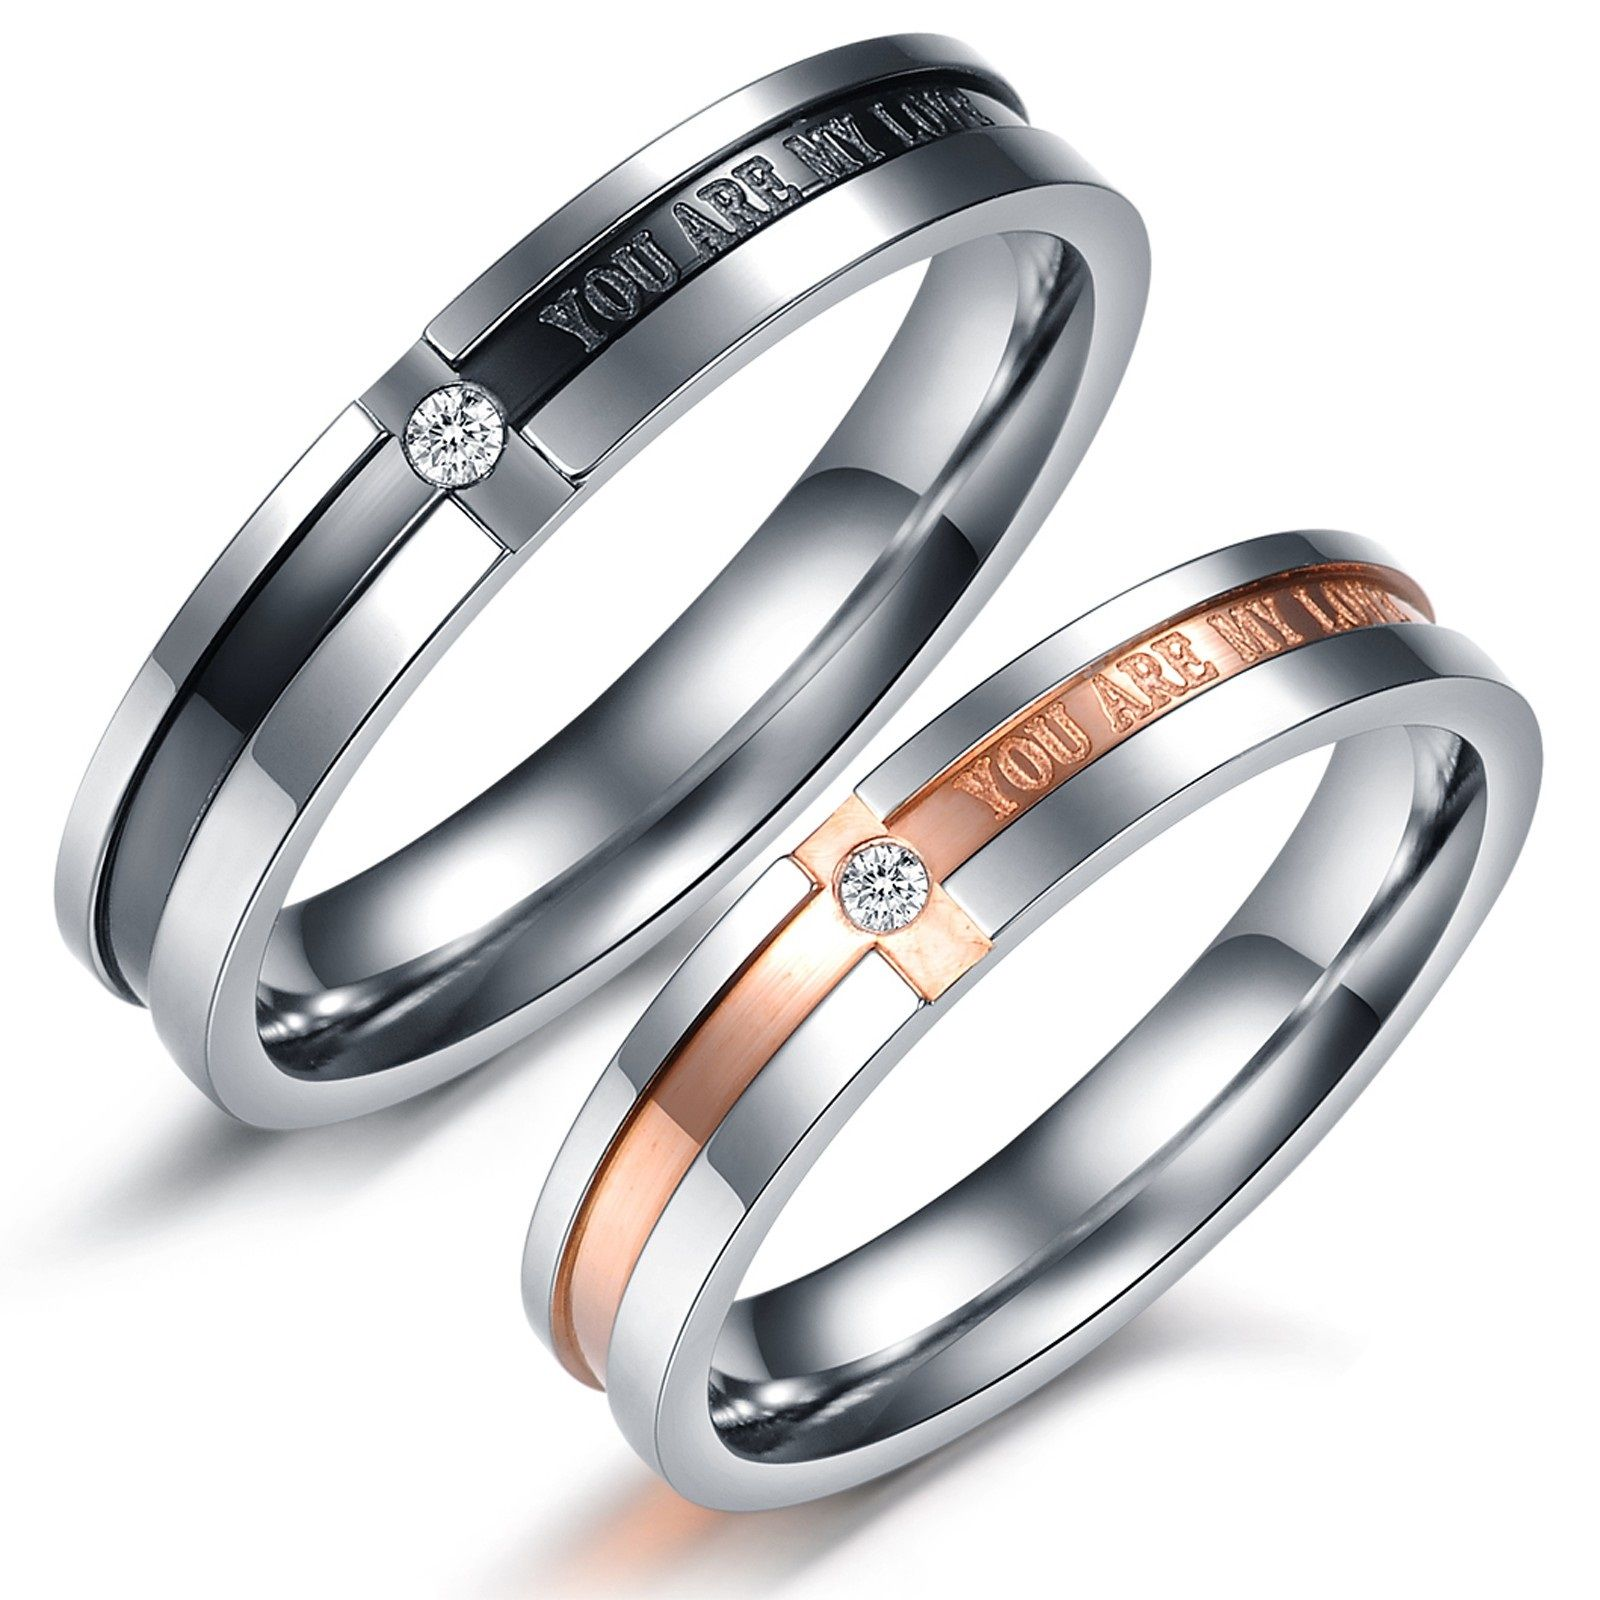 az ring fashion titanium steel jewelry wedding rings couple evermarker products engagement